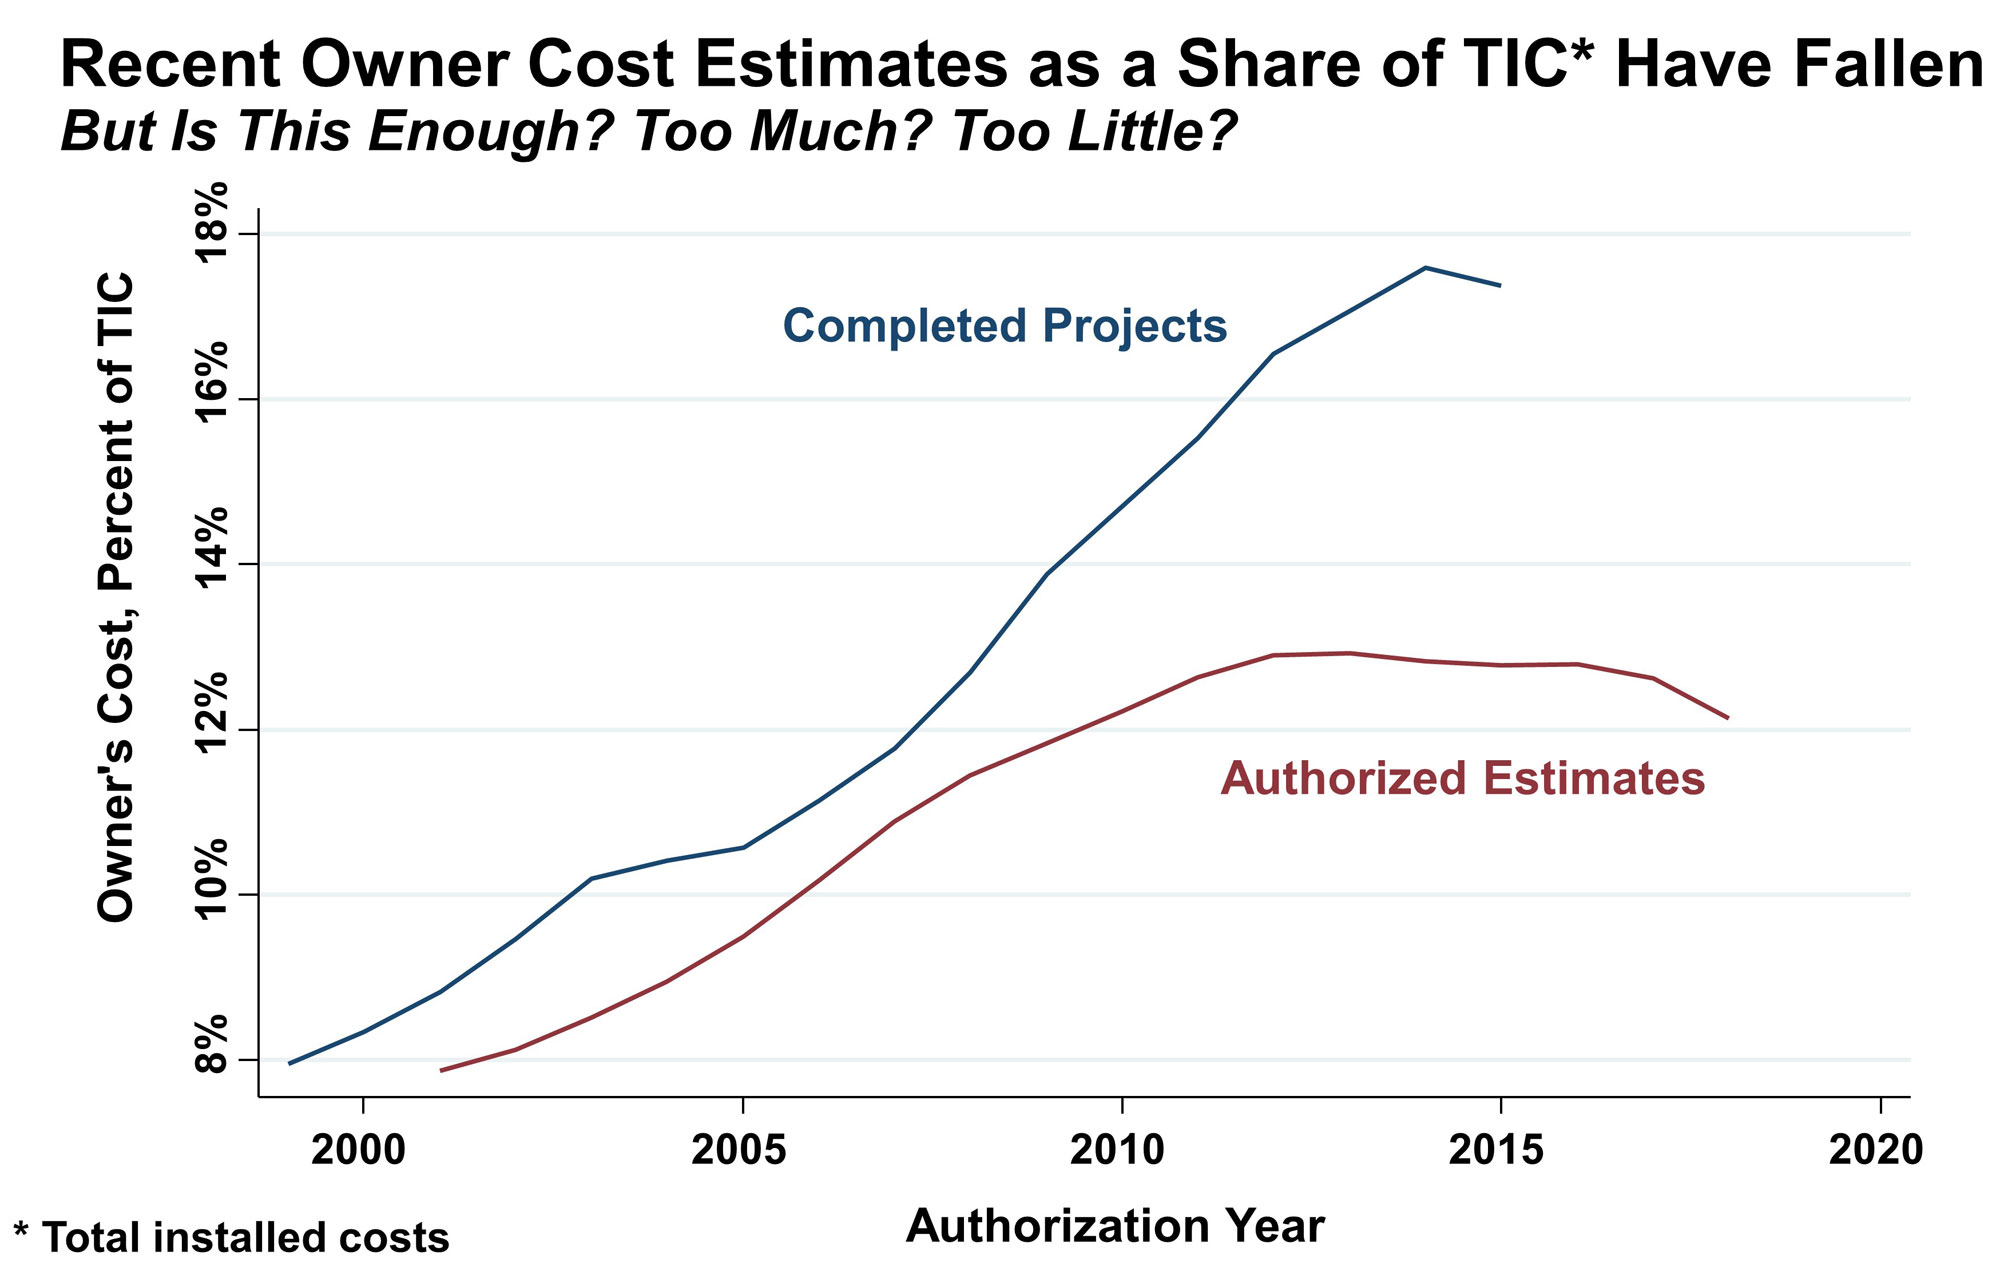 Line graph showing E&P owner's costs as a share of total installed costs for completed projects versus authorized estimates.